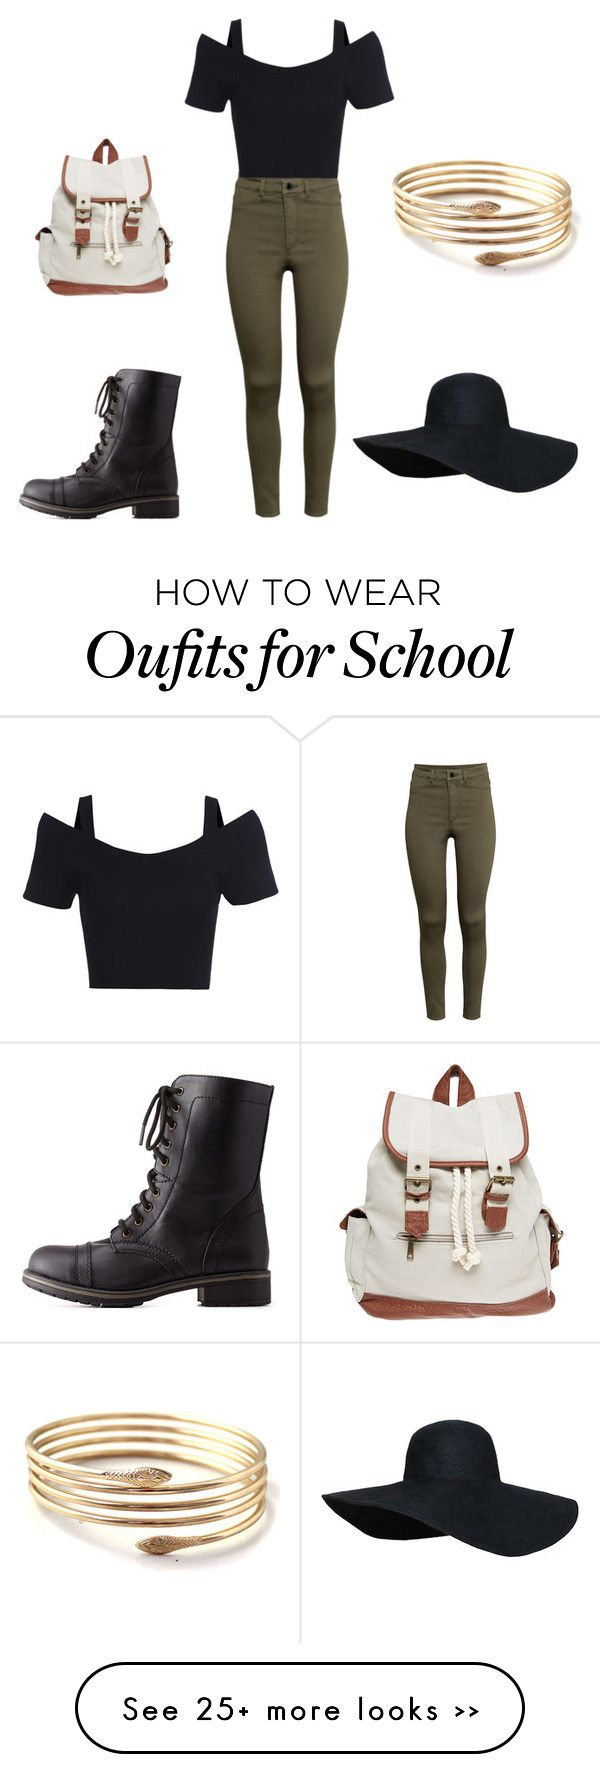 """""""Back to school 2015"""" by amber-de-bleeckere on Polyvore featuring H&M, Charlotte Russe and Wet Seal"""